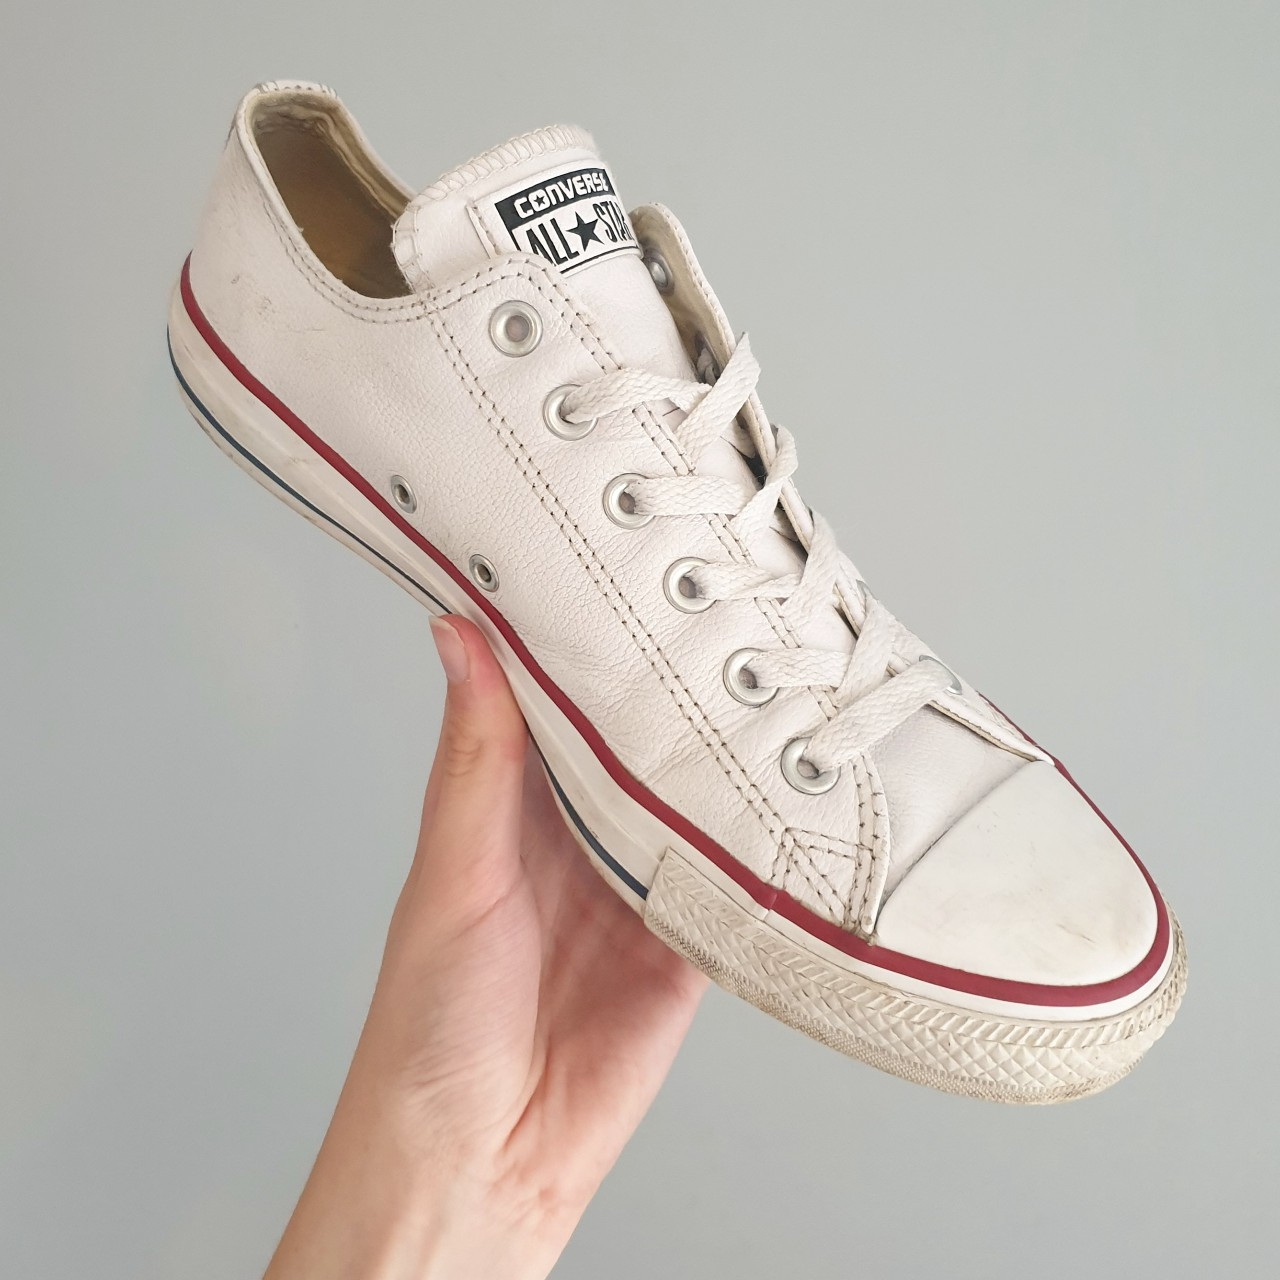 Converse White Leather Shoes Not worn very much, in Depop